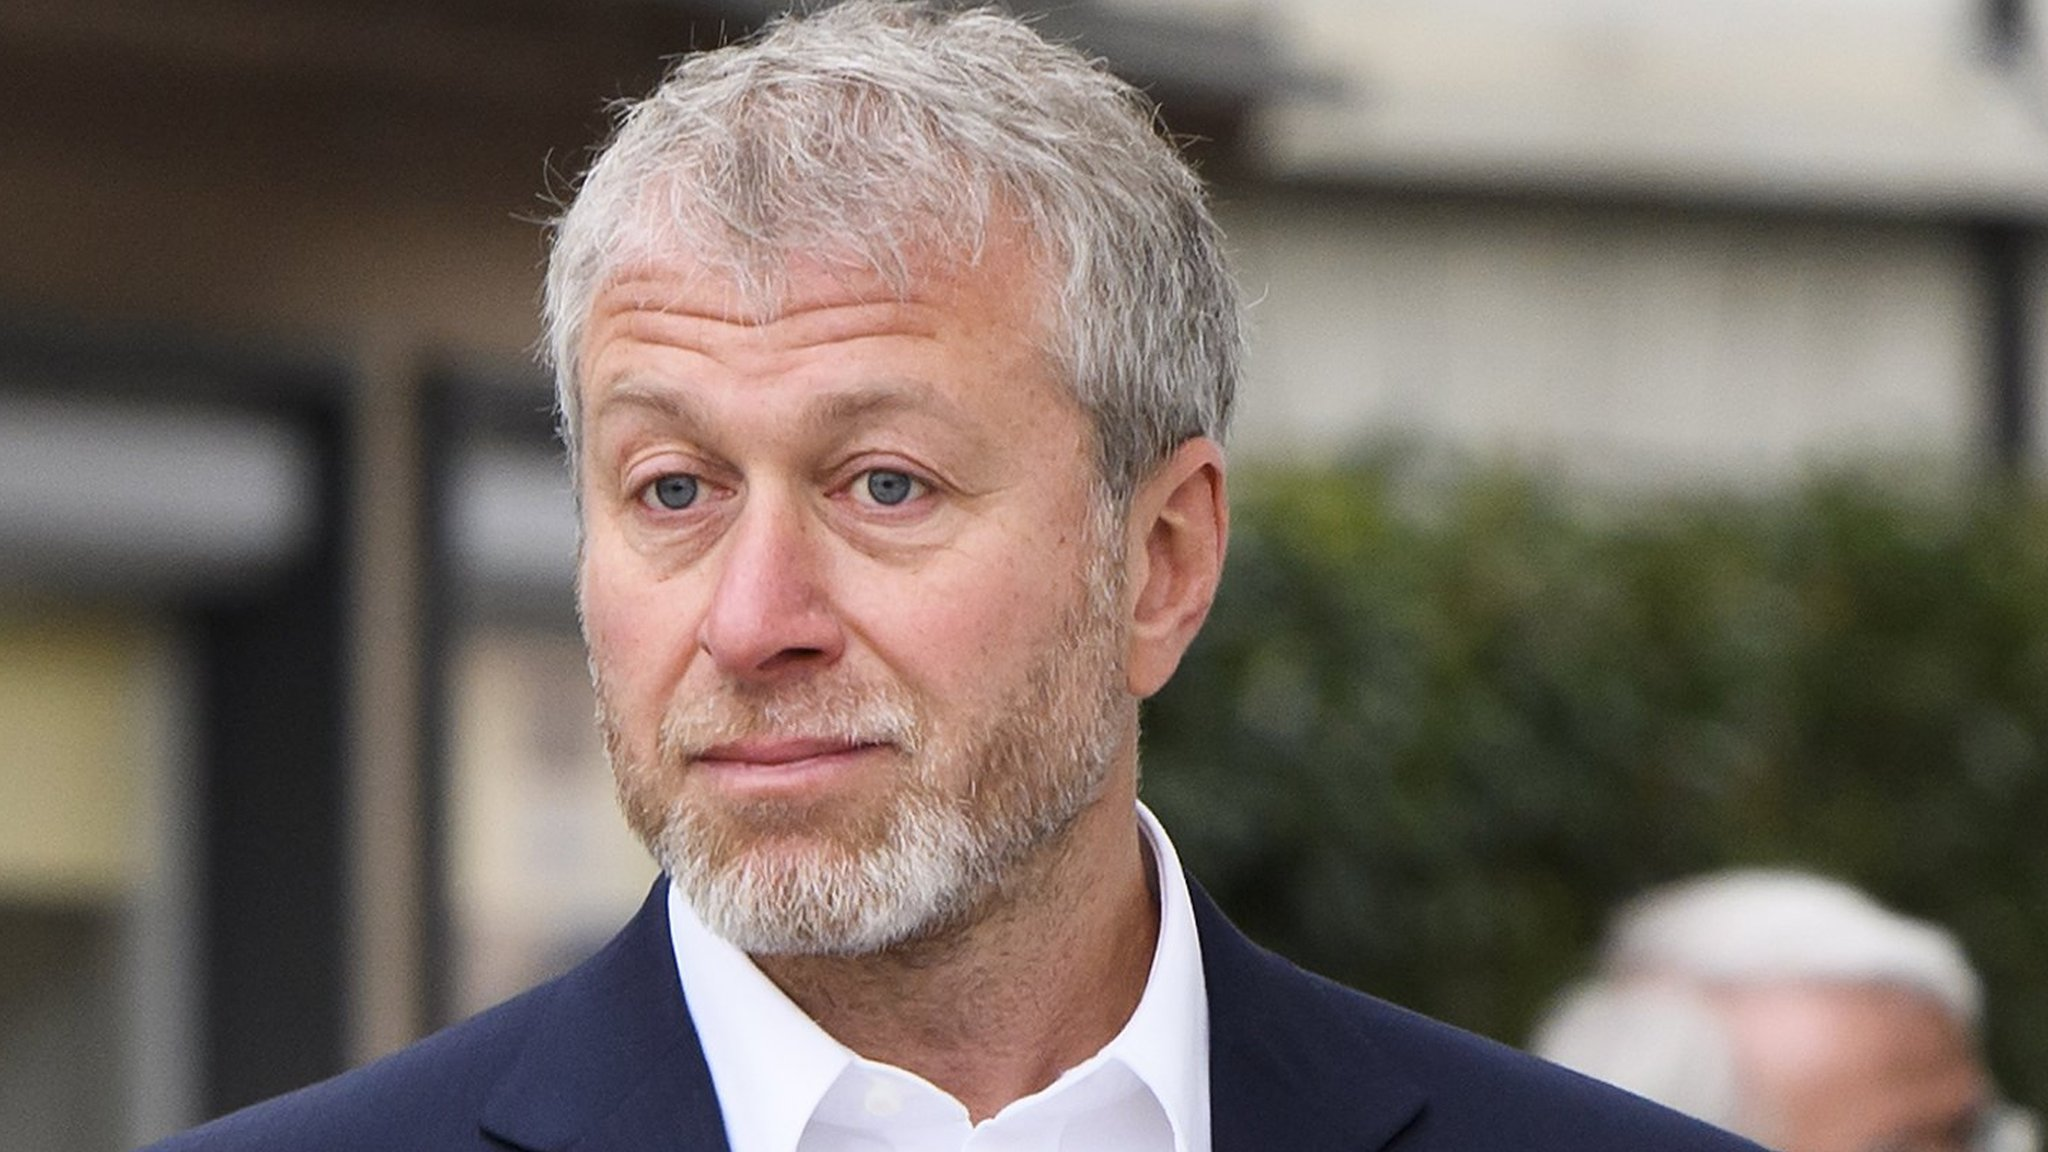 Chelsea owner Abramovich experiences UK visa renewal 'delay'